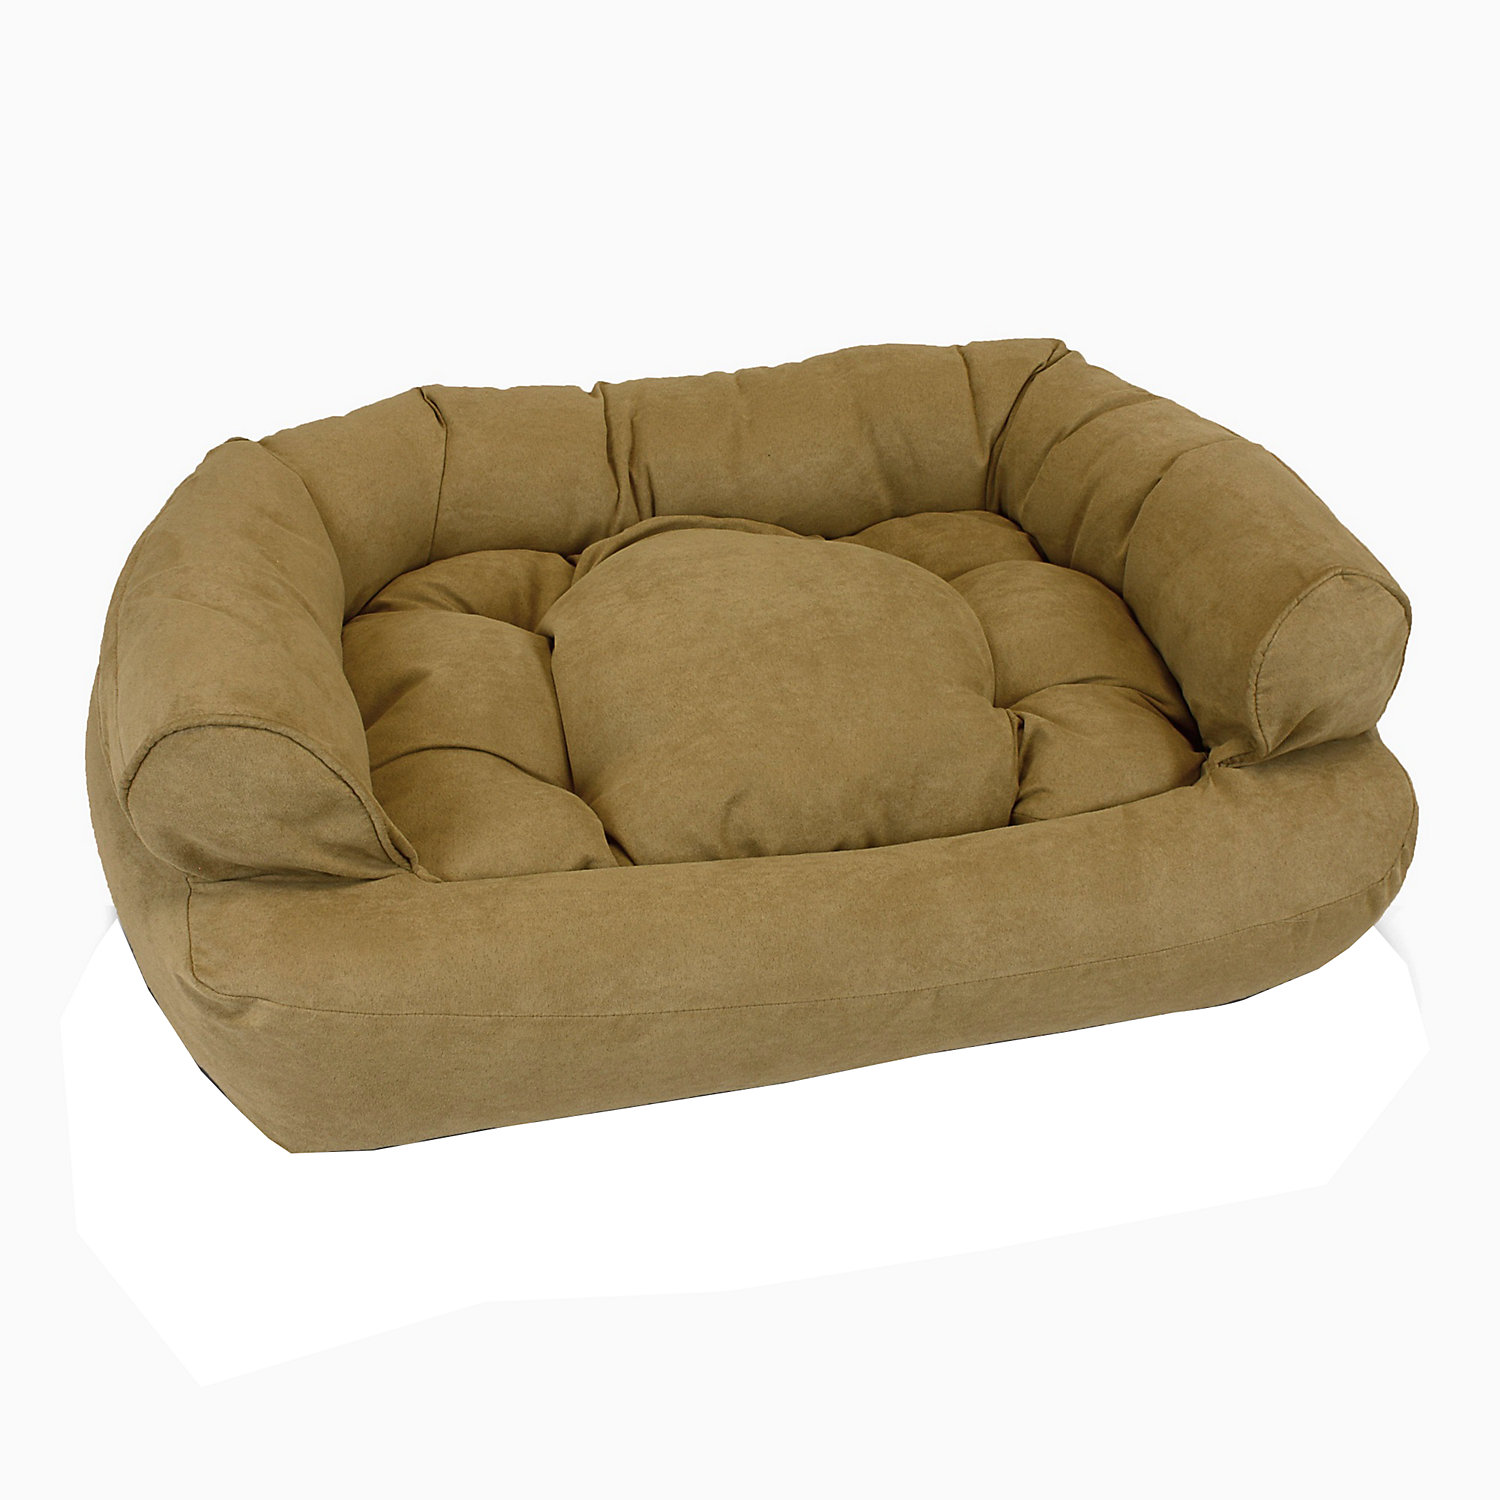 Snoozer Luxury Micro Suede Overstuffed Pet Sofa in Camel 20 L x 30 W Small